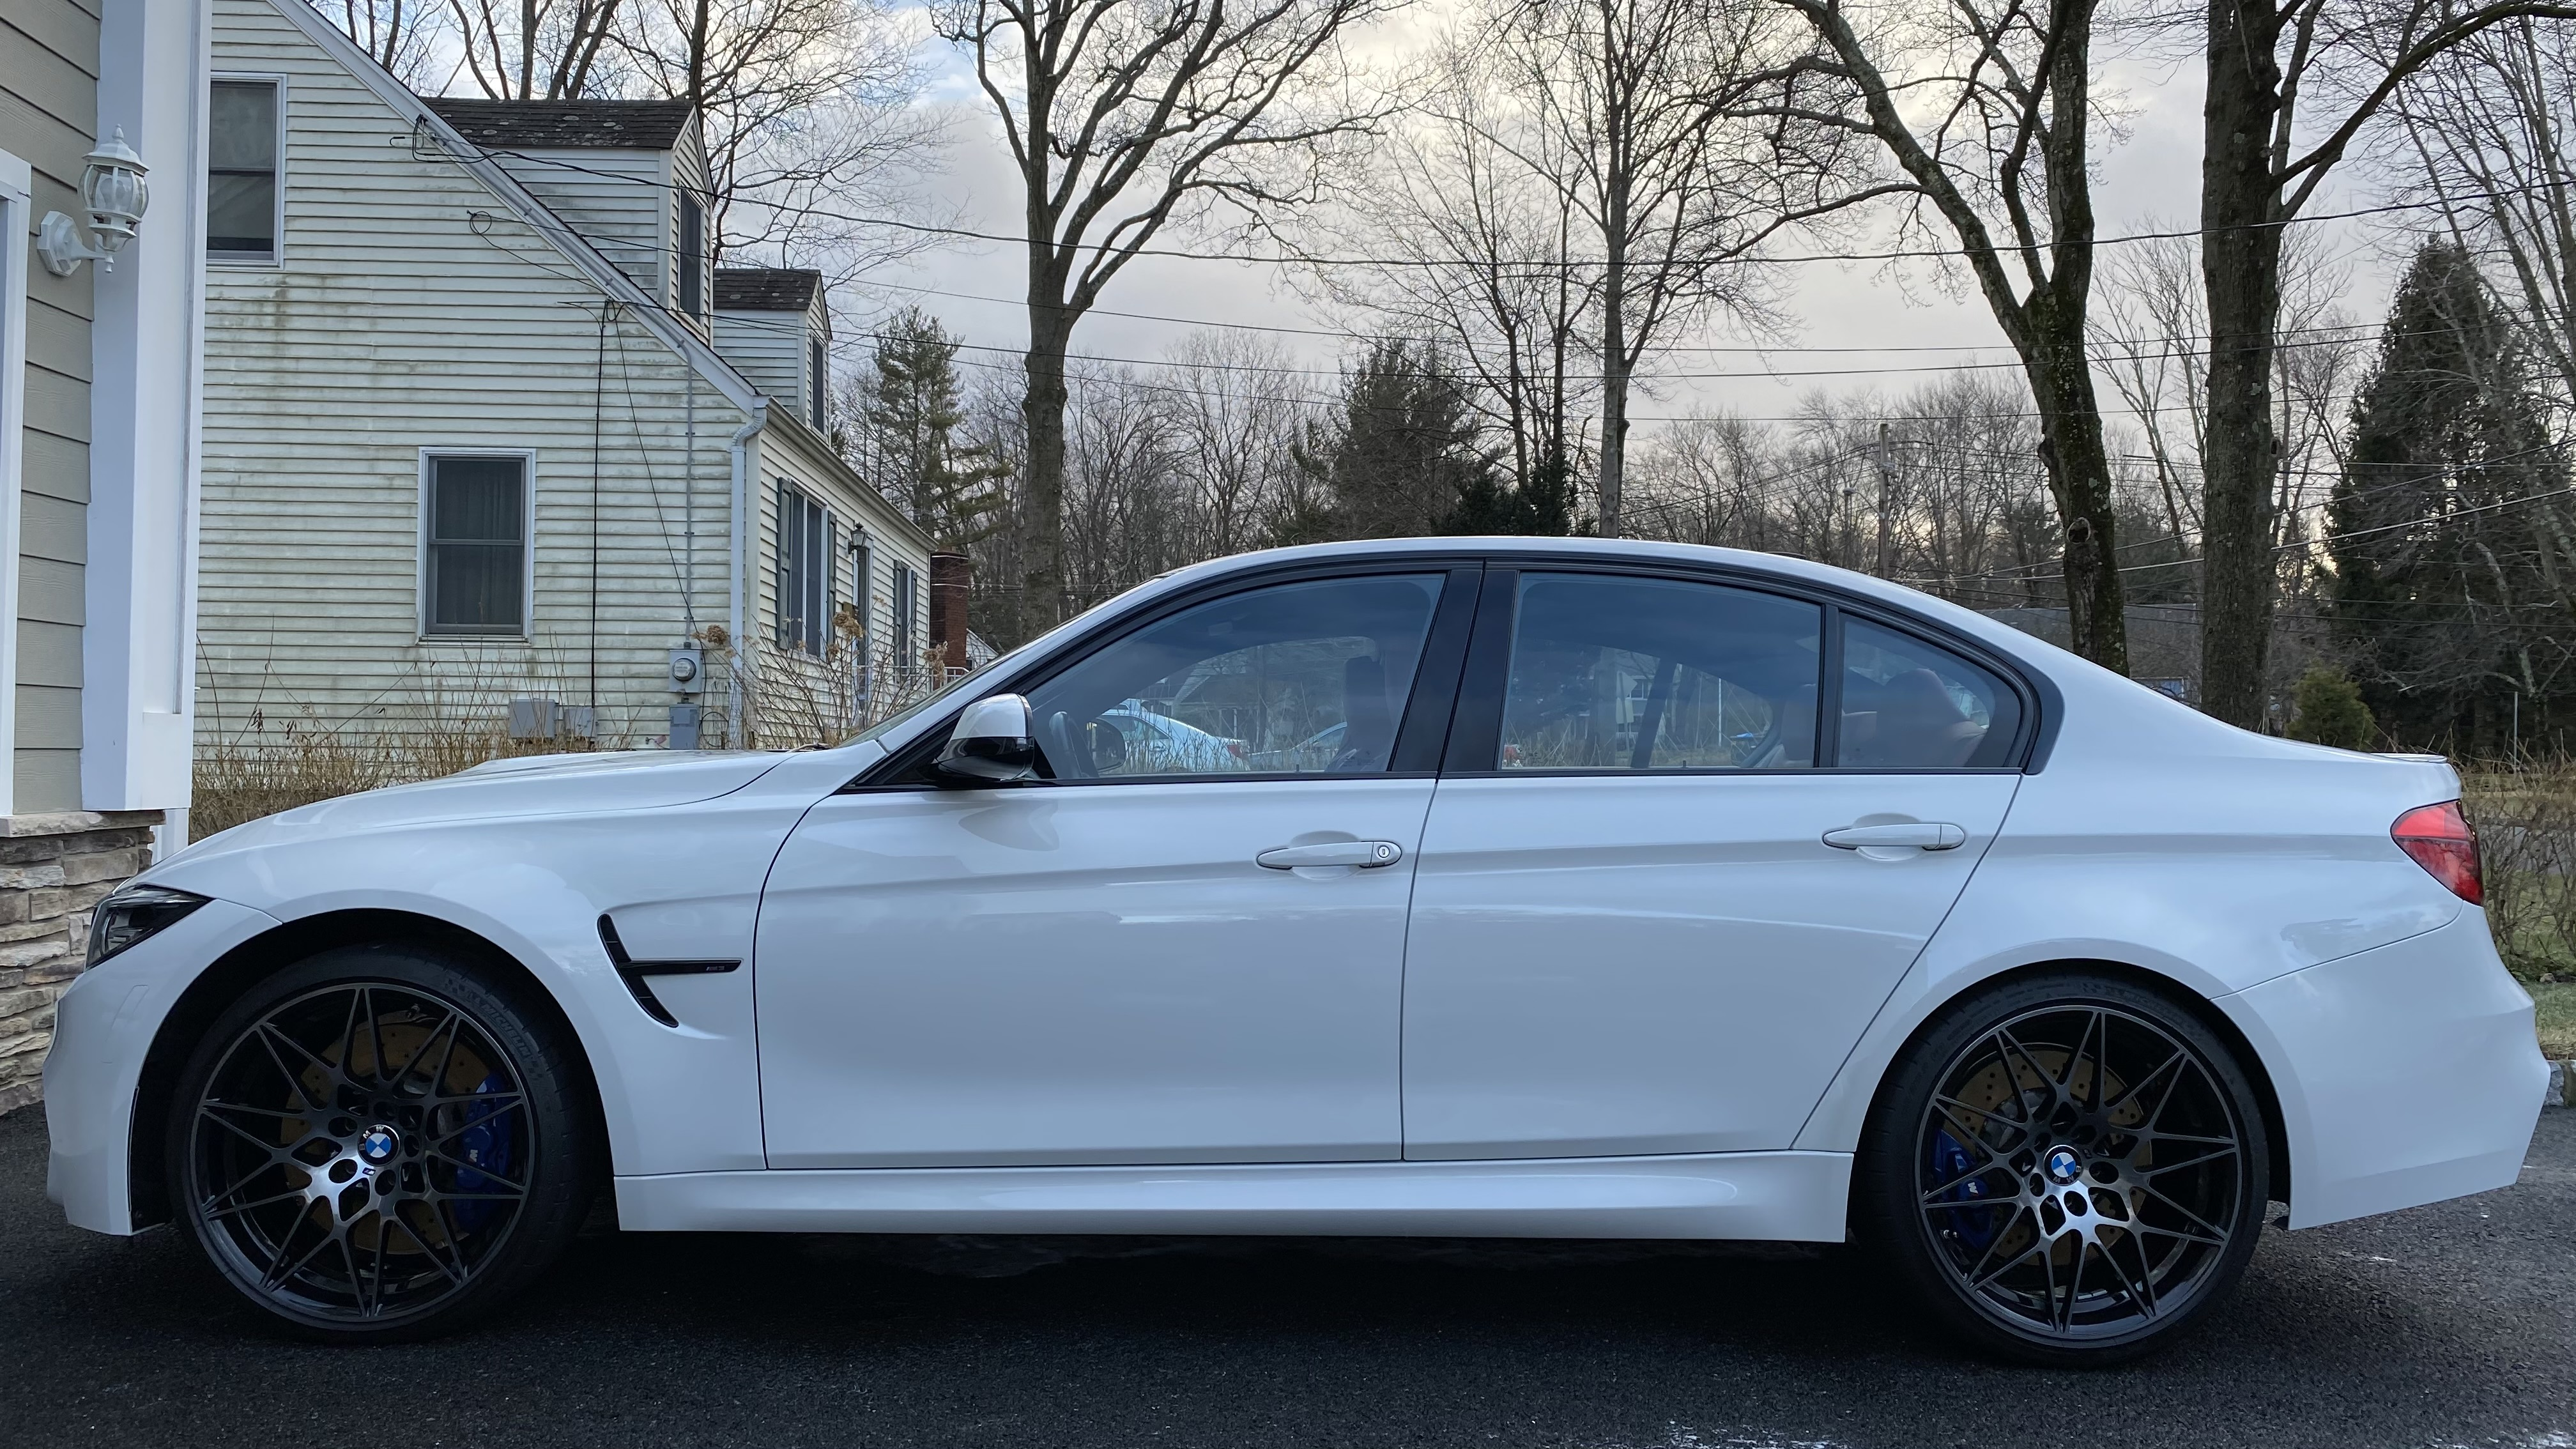 For Sale 2018 Bmw F80 M3 Competition Private Transfers Leasehackr Forum